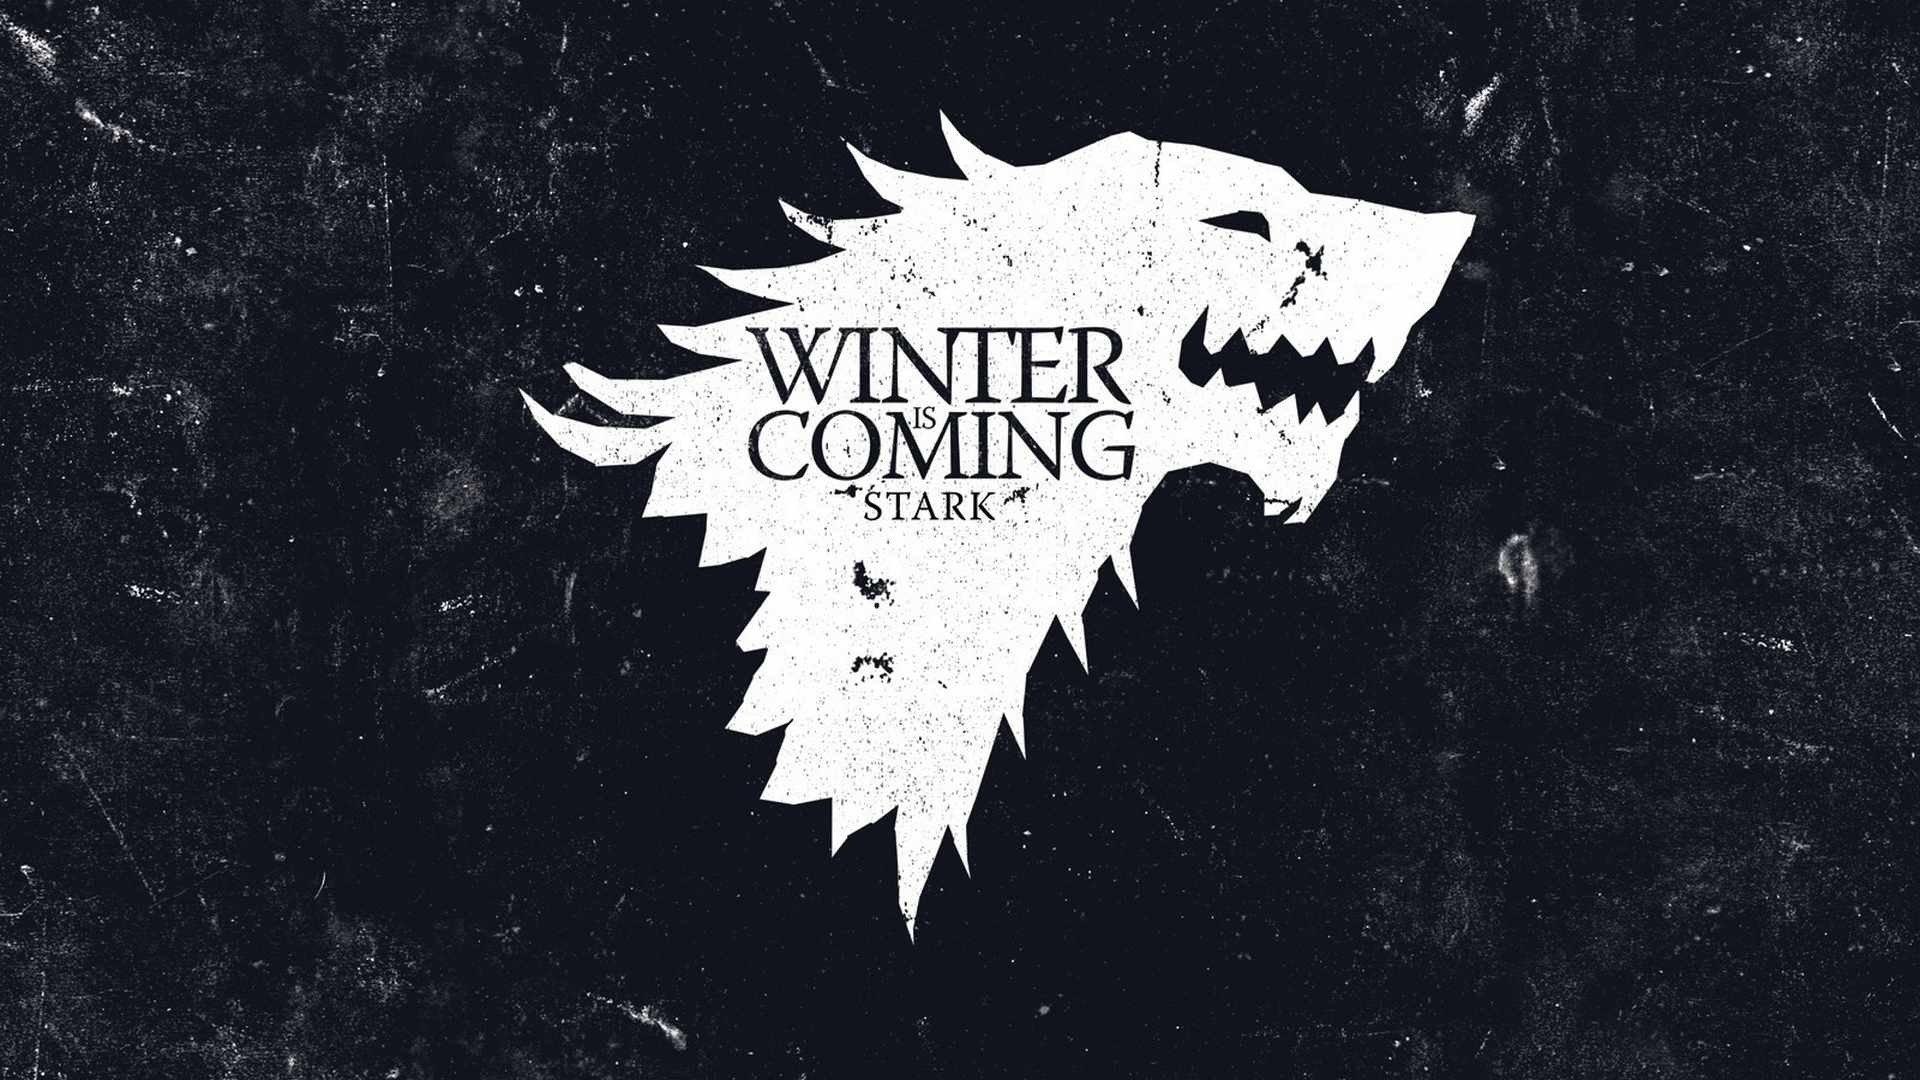 winter is coming hd wallpaper (74+ images)